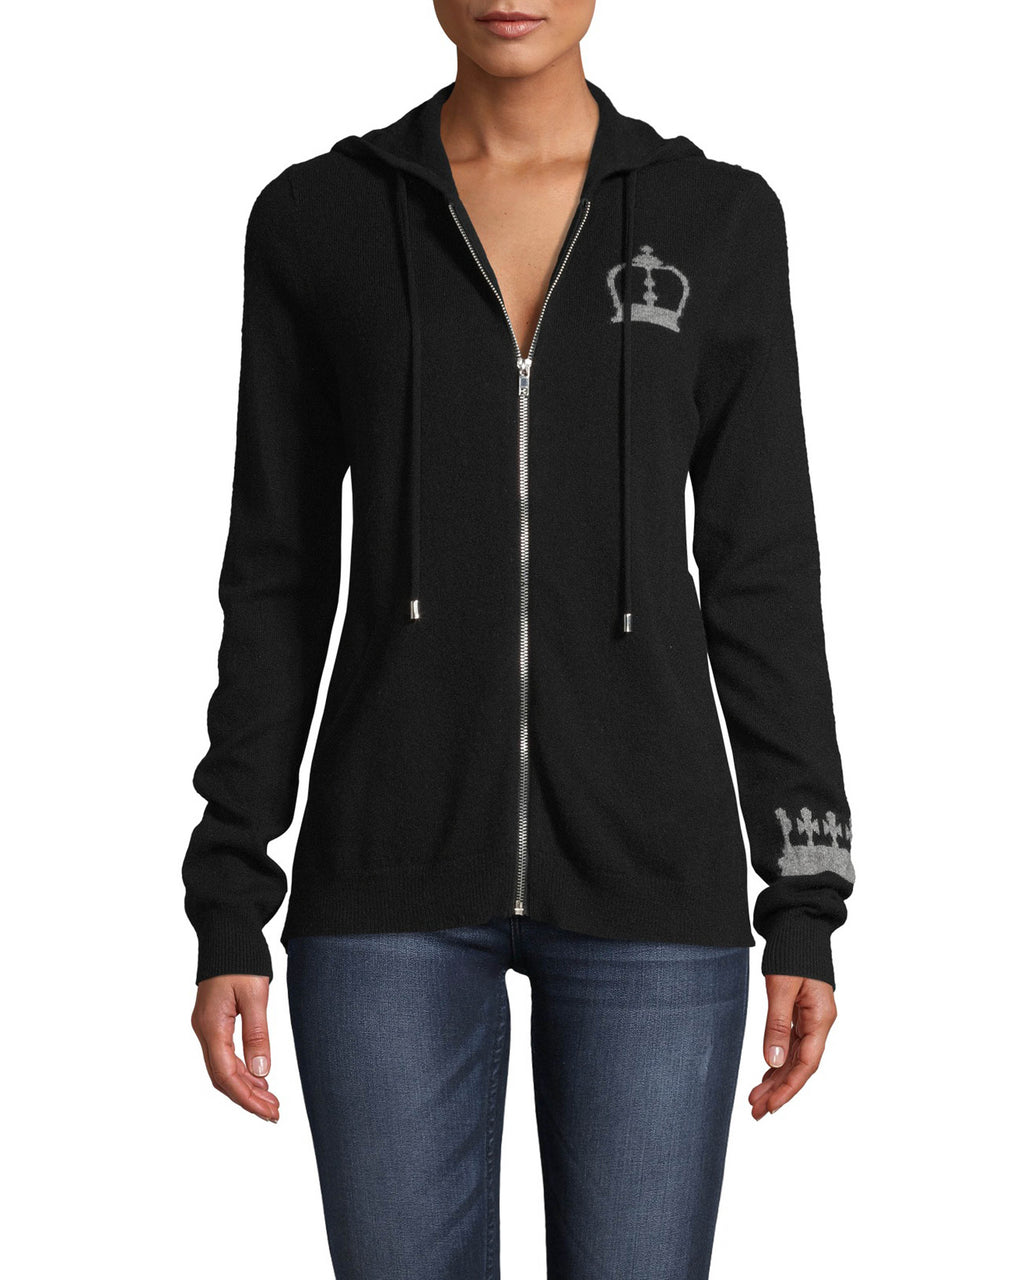 CT18214 - CASHMERE CROWN HOODIE - tops - knitwear - Wear your crown on your sleeve with this cozy style. Crafted from 100% cashmere, this zip up hoodie will be on repeat all fall long. Add 1 line break Stylist tip: Pair with your most loved jeans for a comfortable yet stylish outfit.